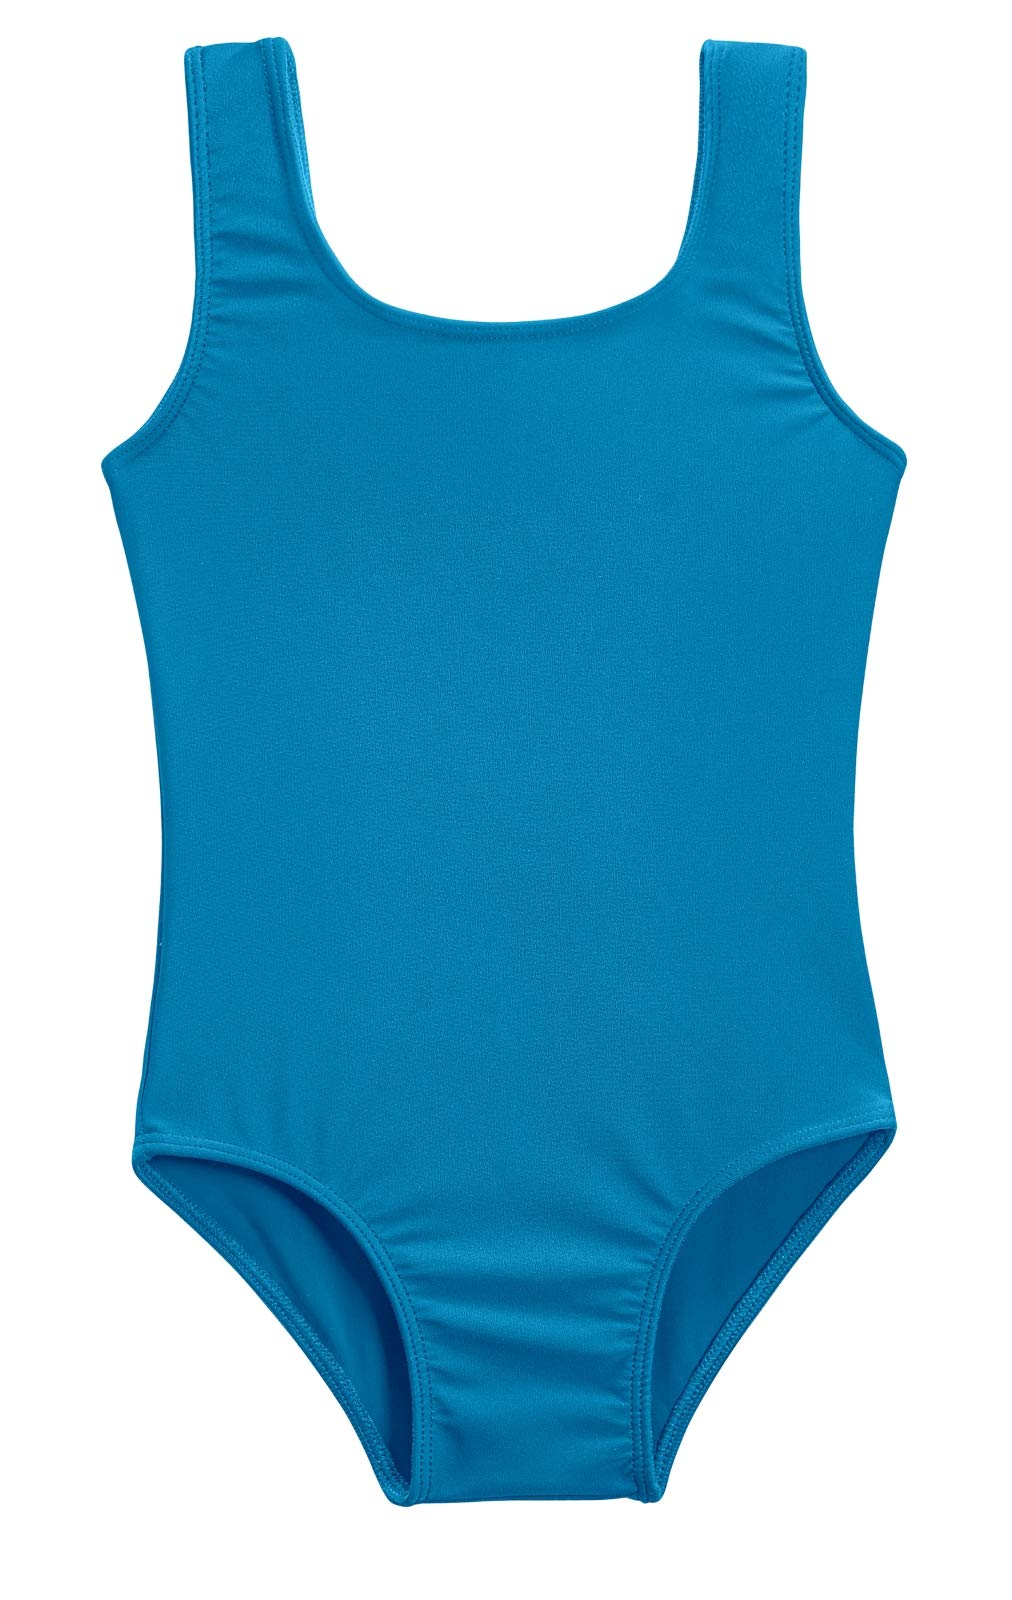 City Threads Girls' One Piece Swimming Suit with Sun Protection SPF for Beach Pool or Play Swim Suit Rash Guard Bottoms Briefs, Teal, 2T